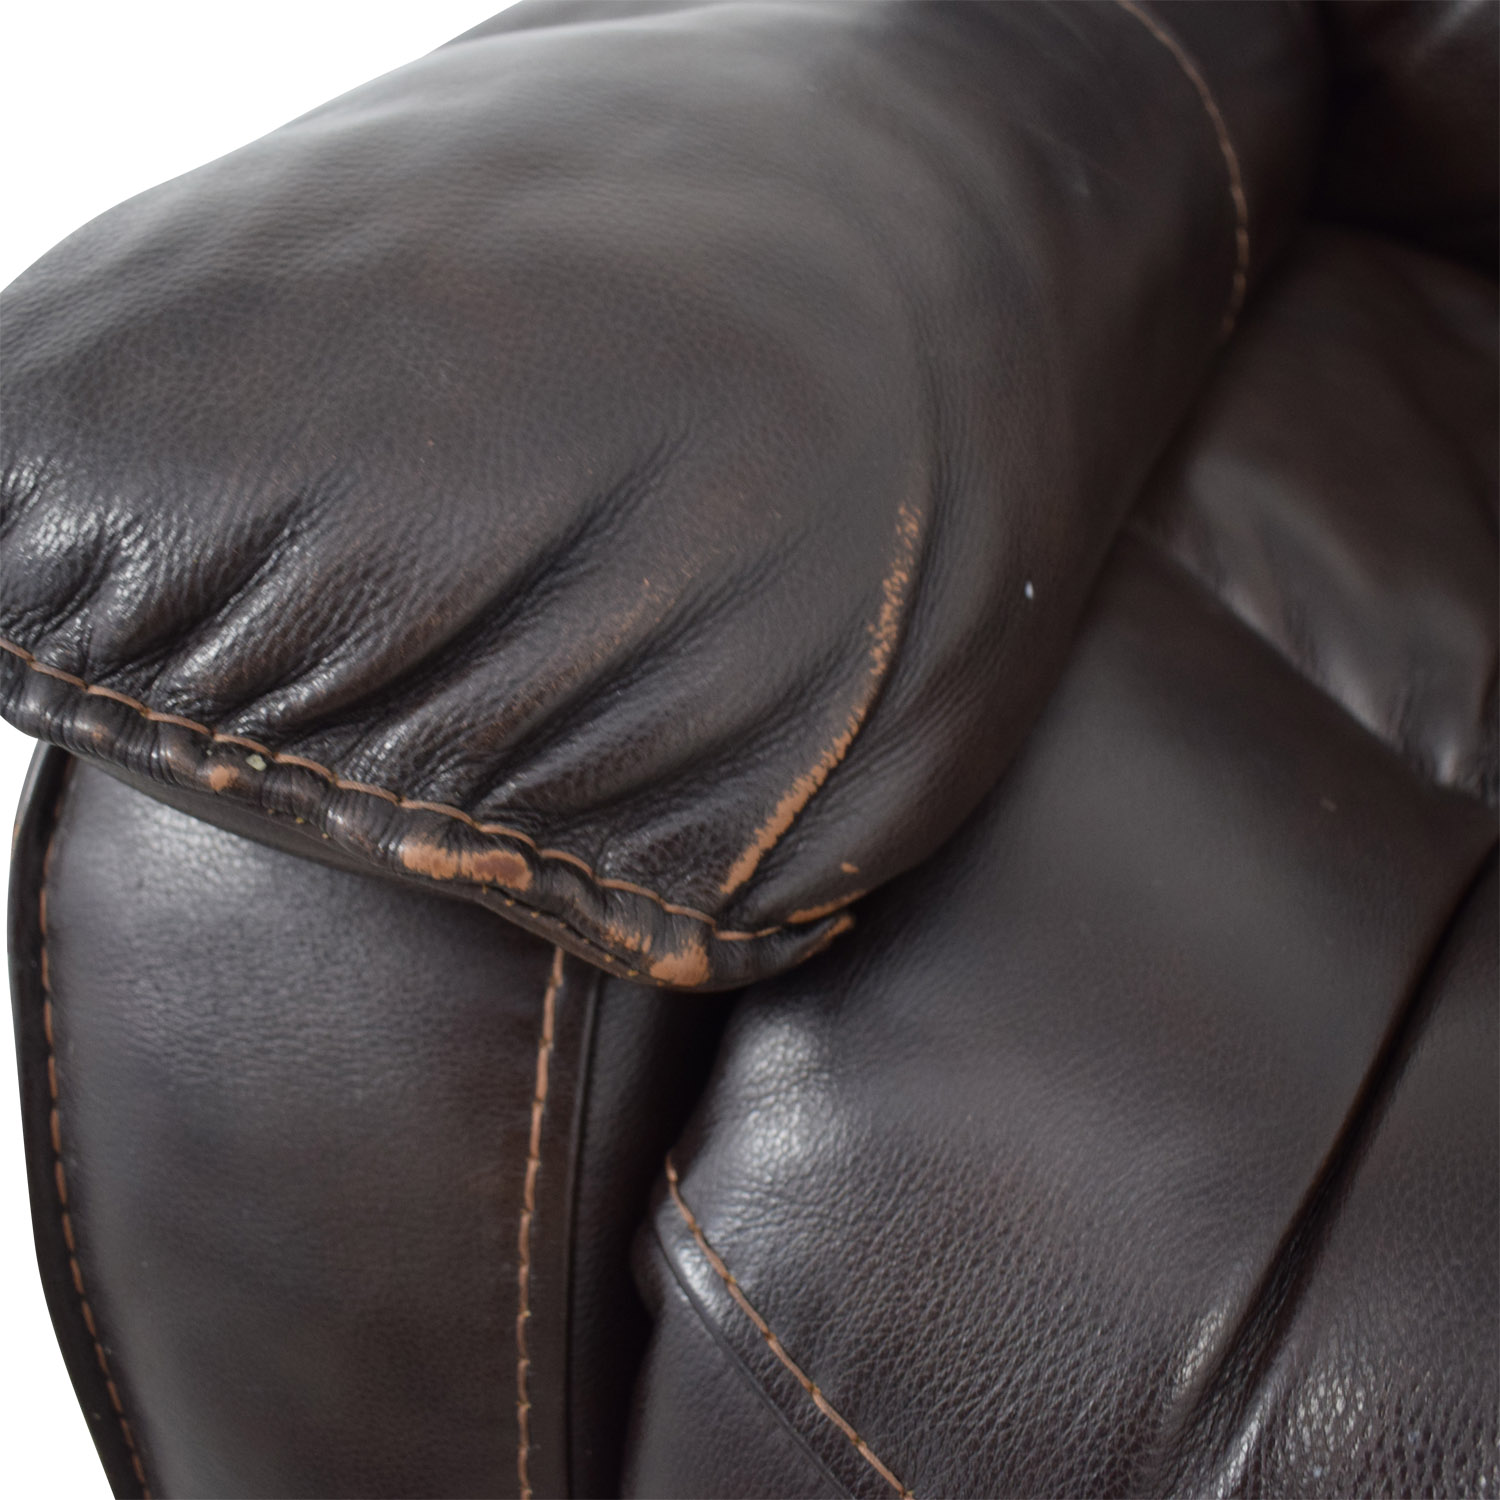 Macy's Macy's Brown Leather Recliner Chair Chairs